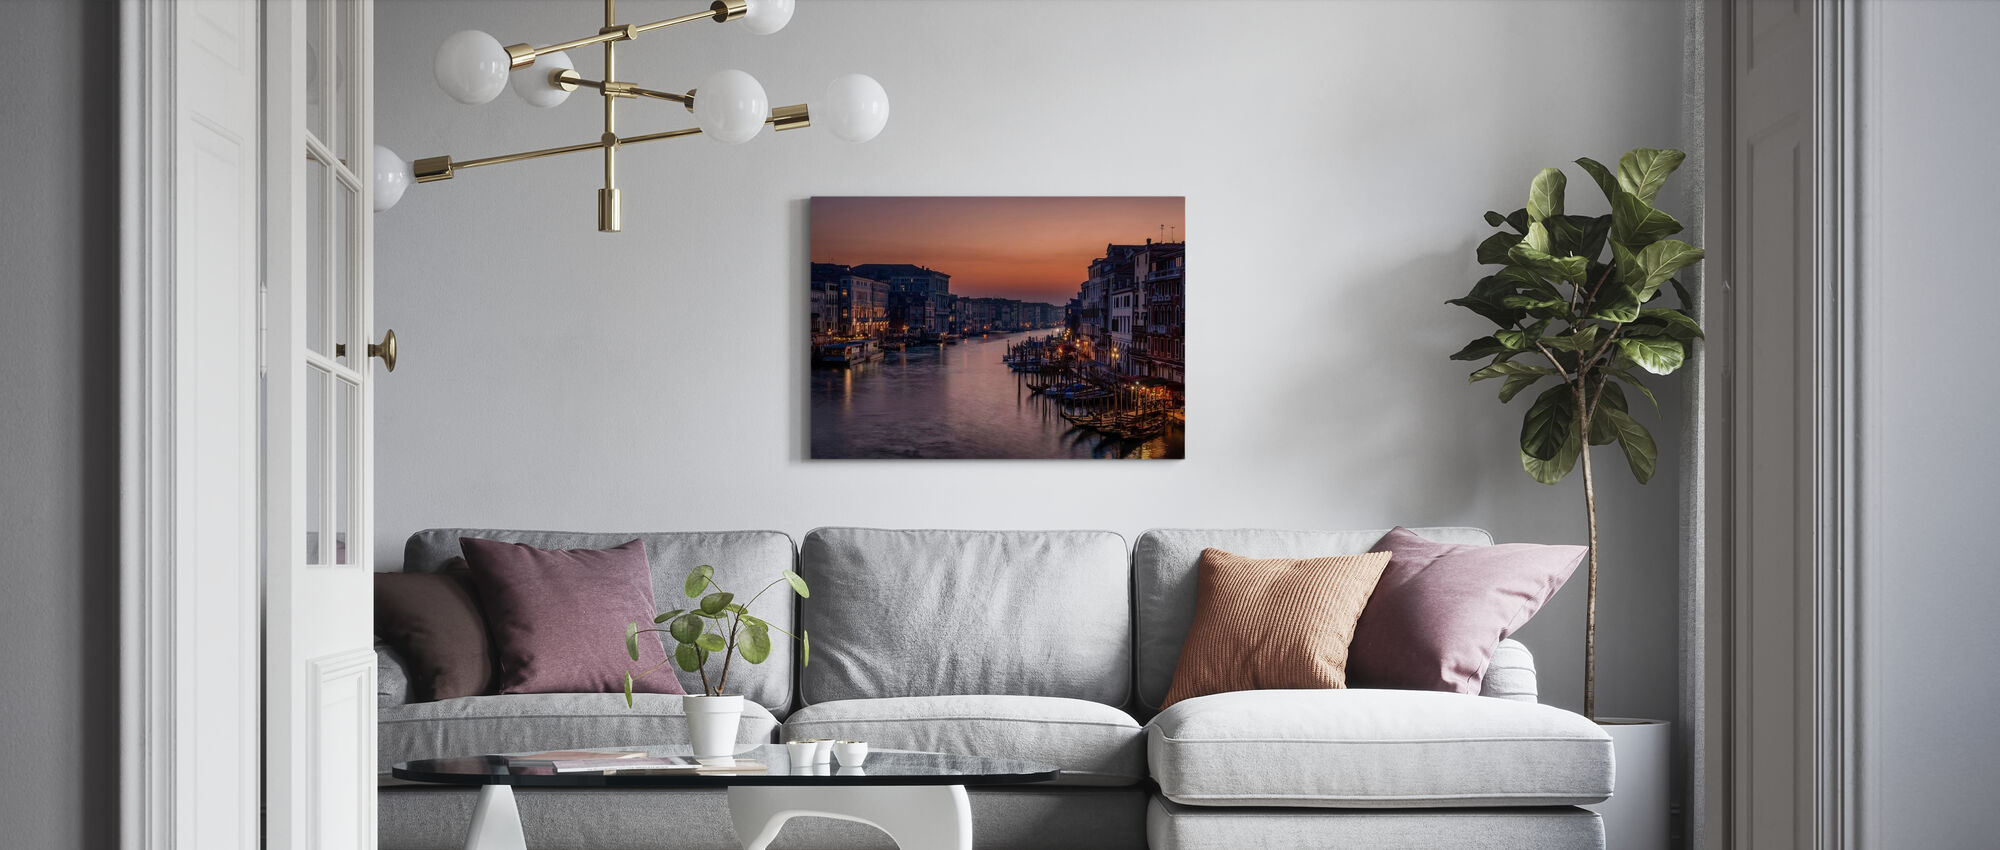 Venice Grand Canal at Sunset - Canvas print - Living Room